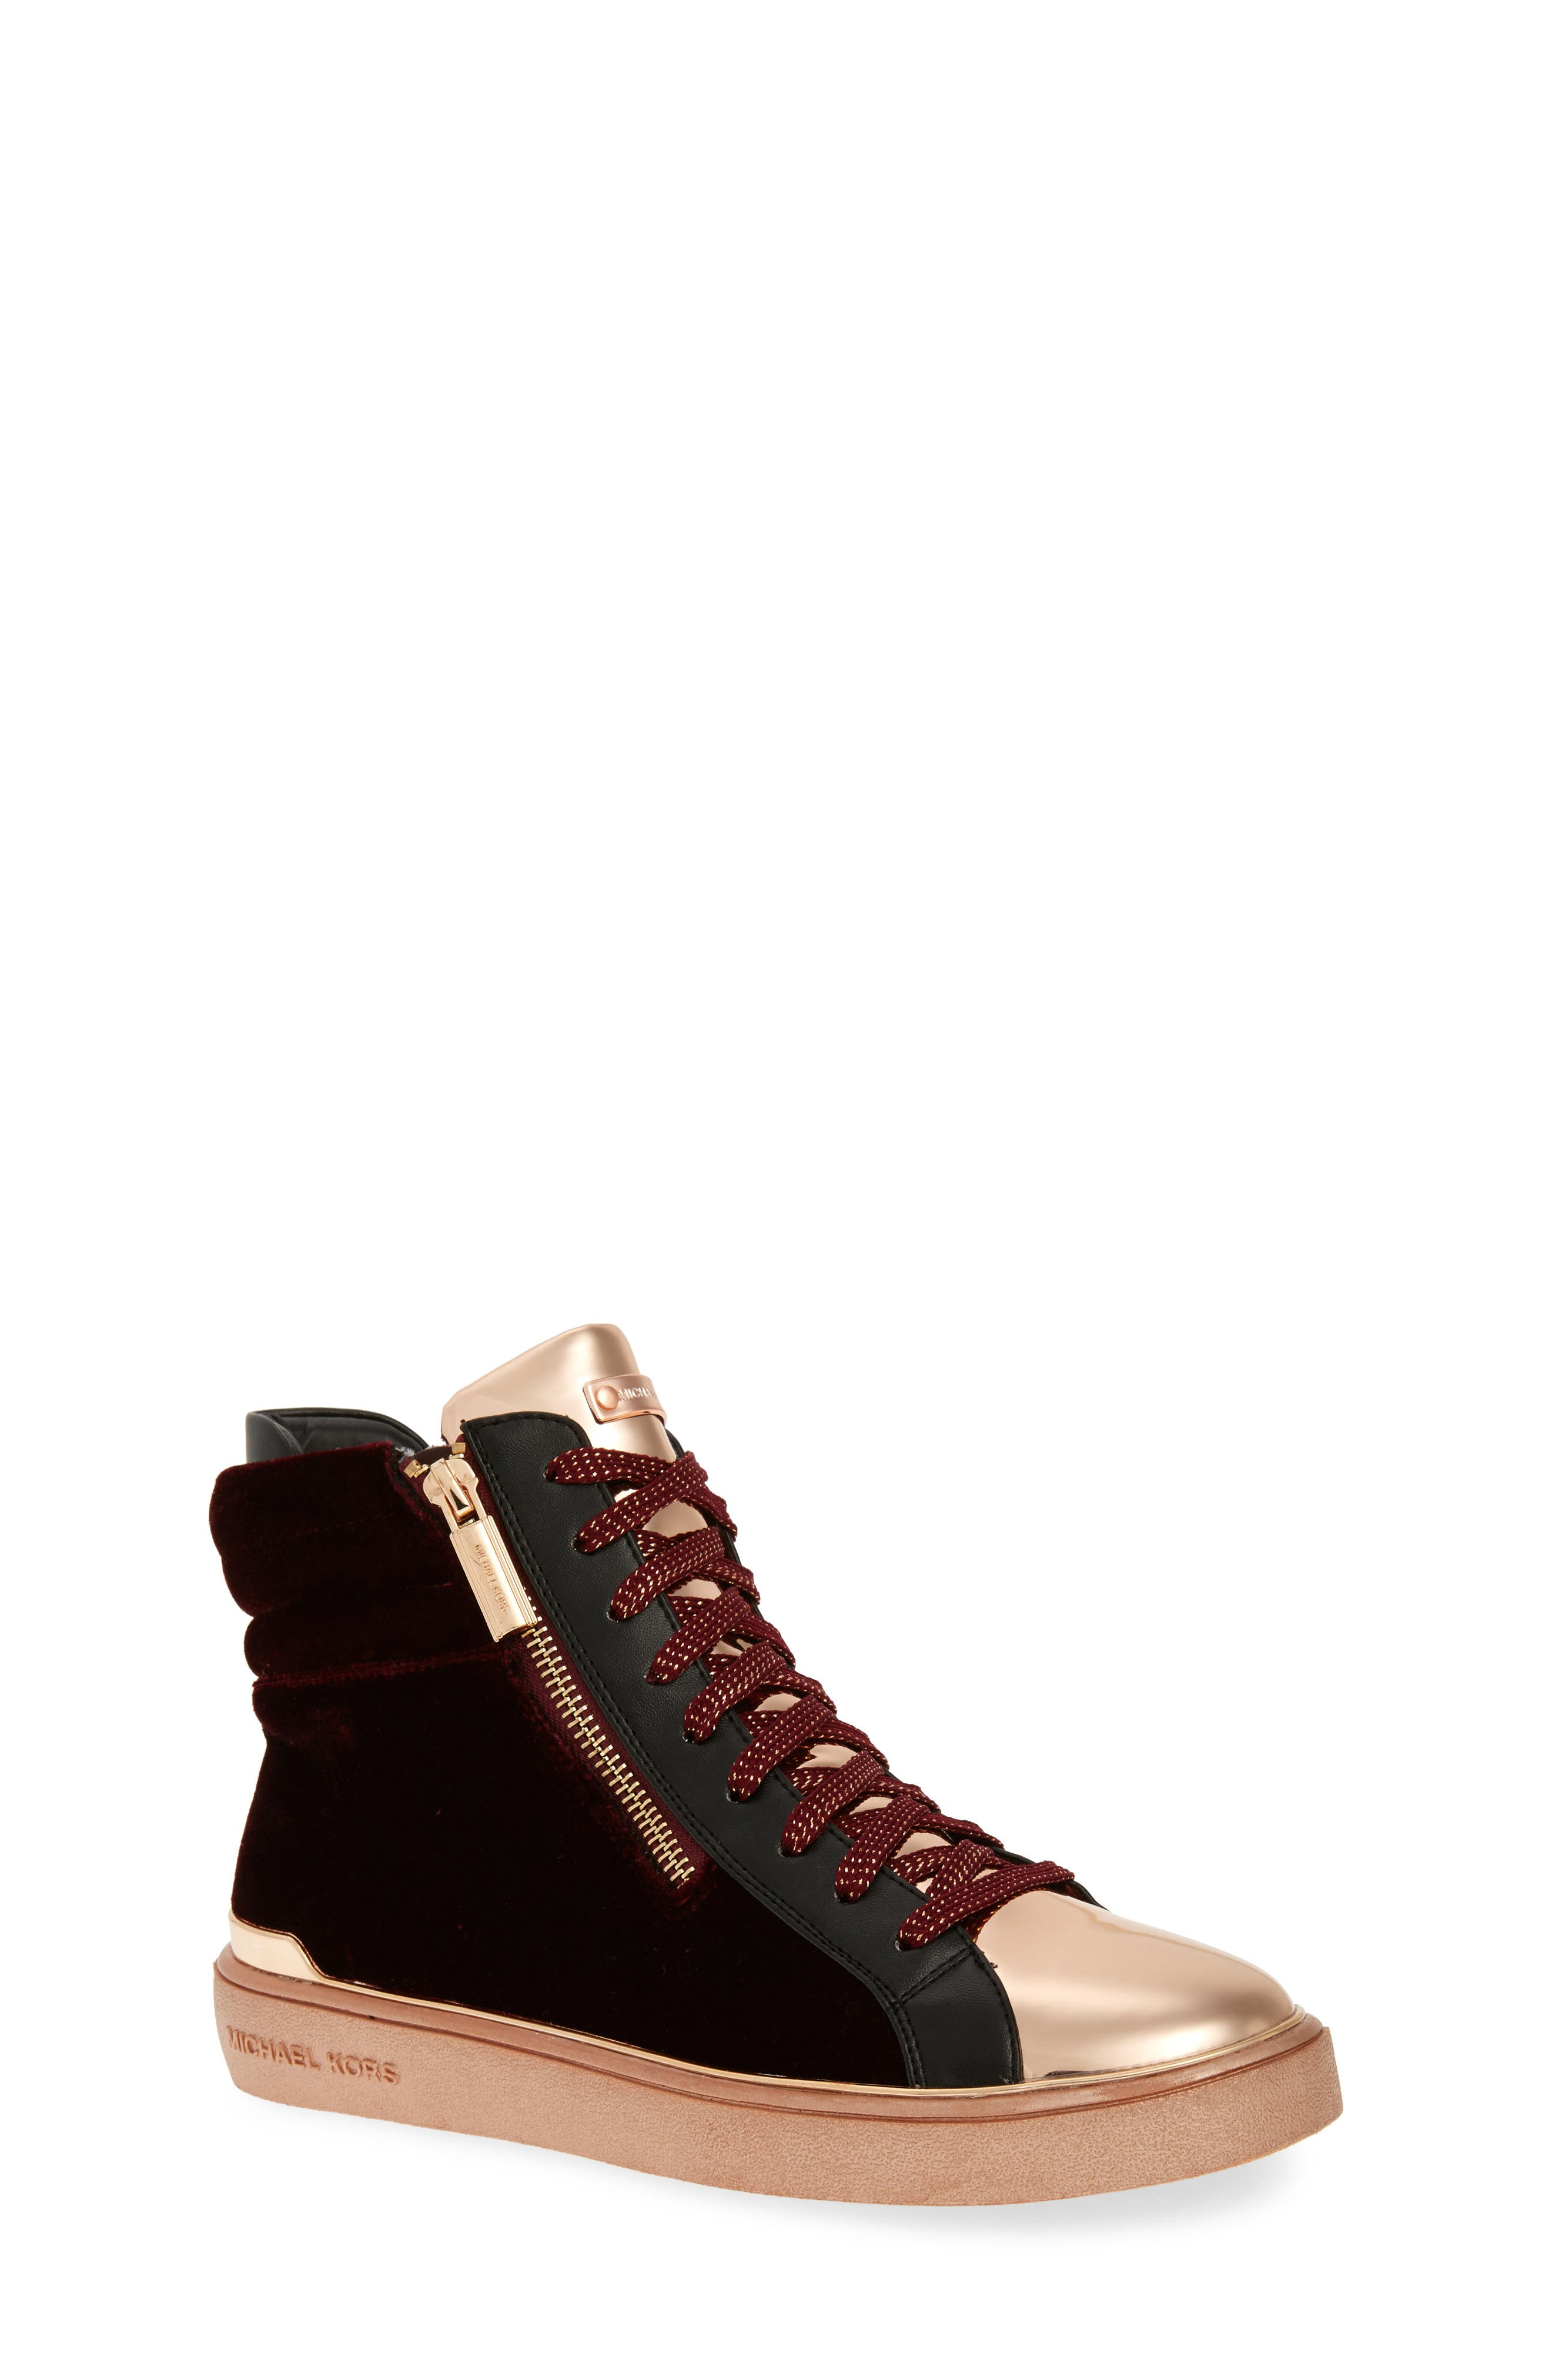 Ivy Blue High Top Sneaker,                             Main thumbnail 2, color,